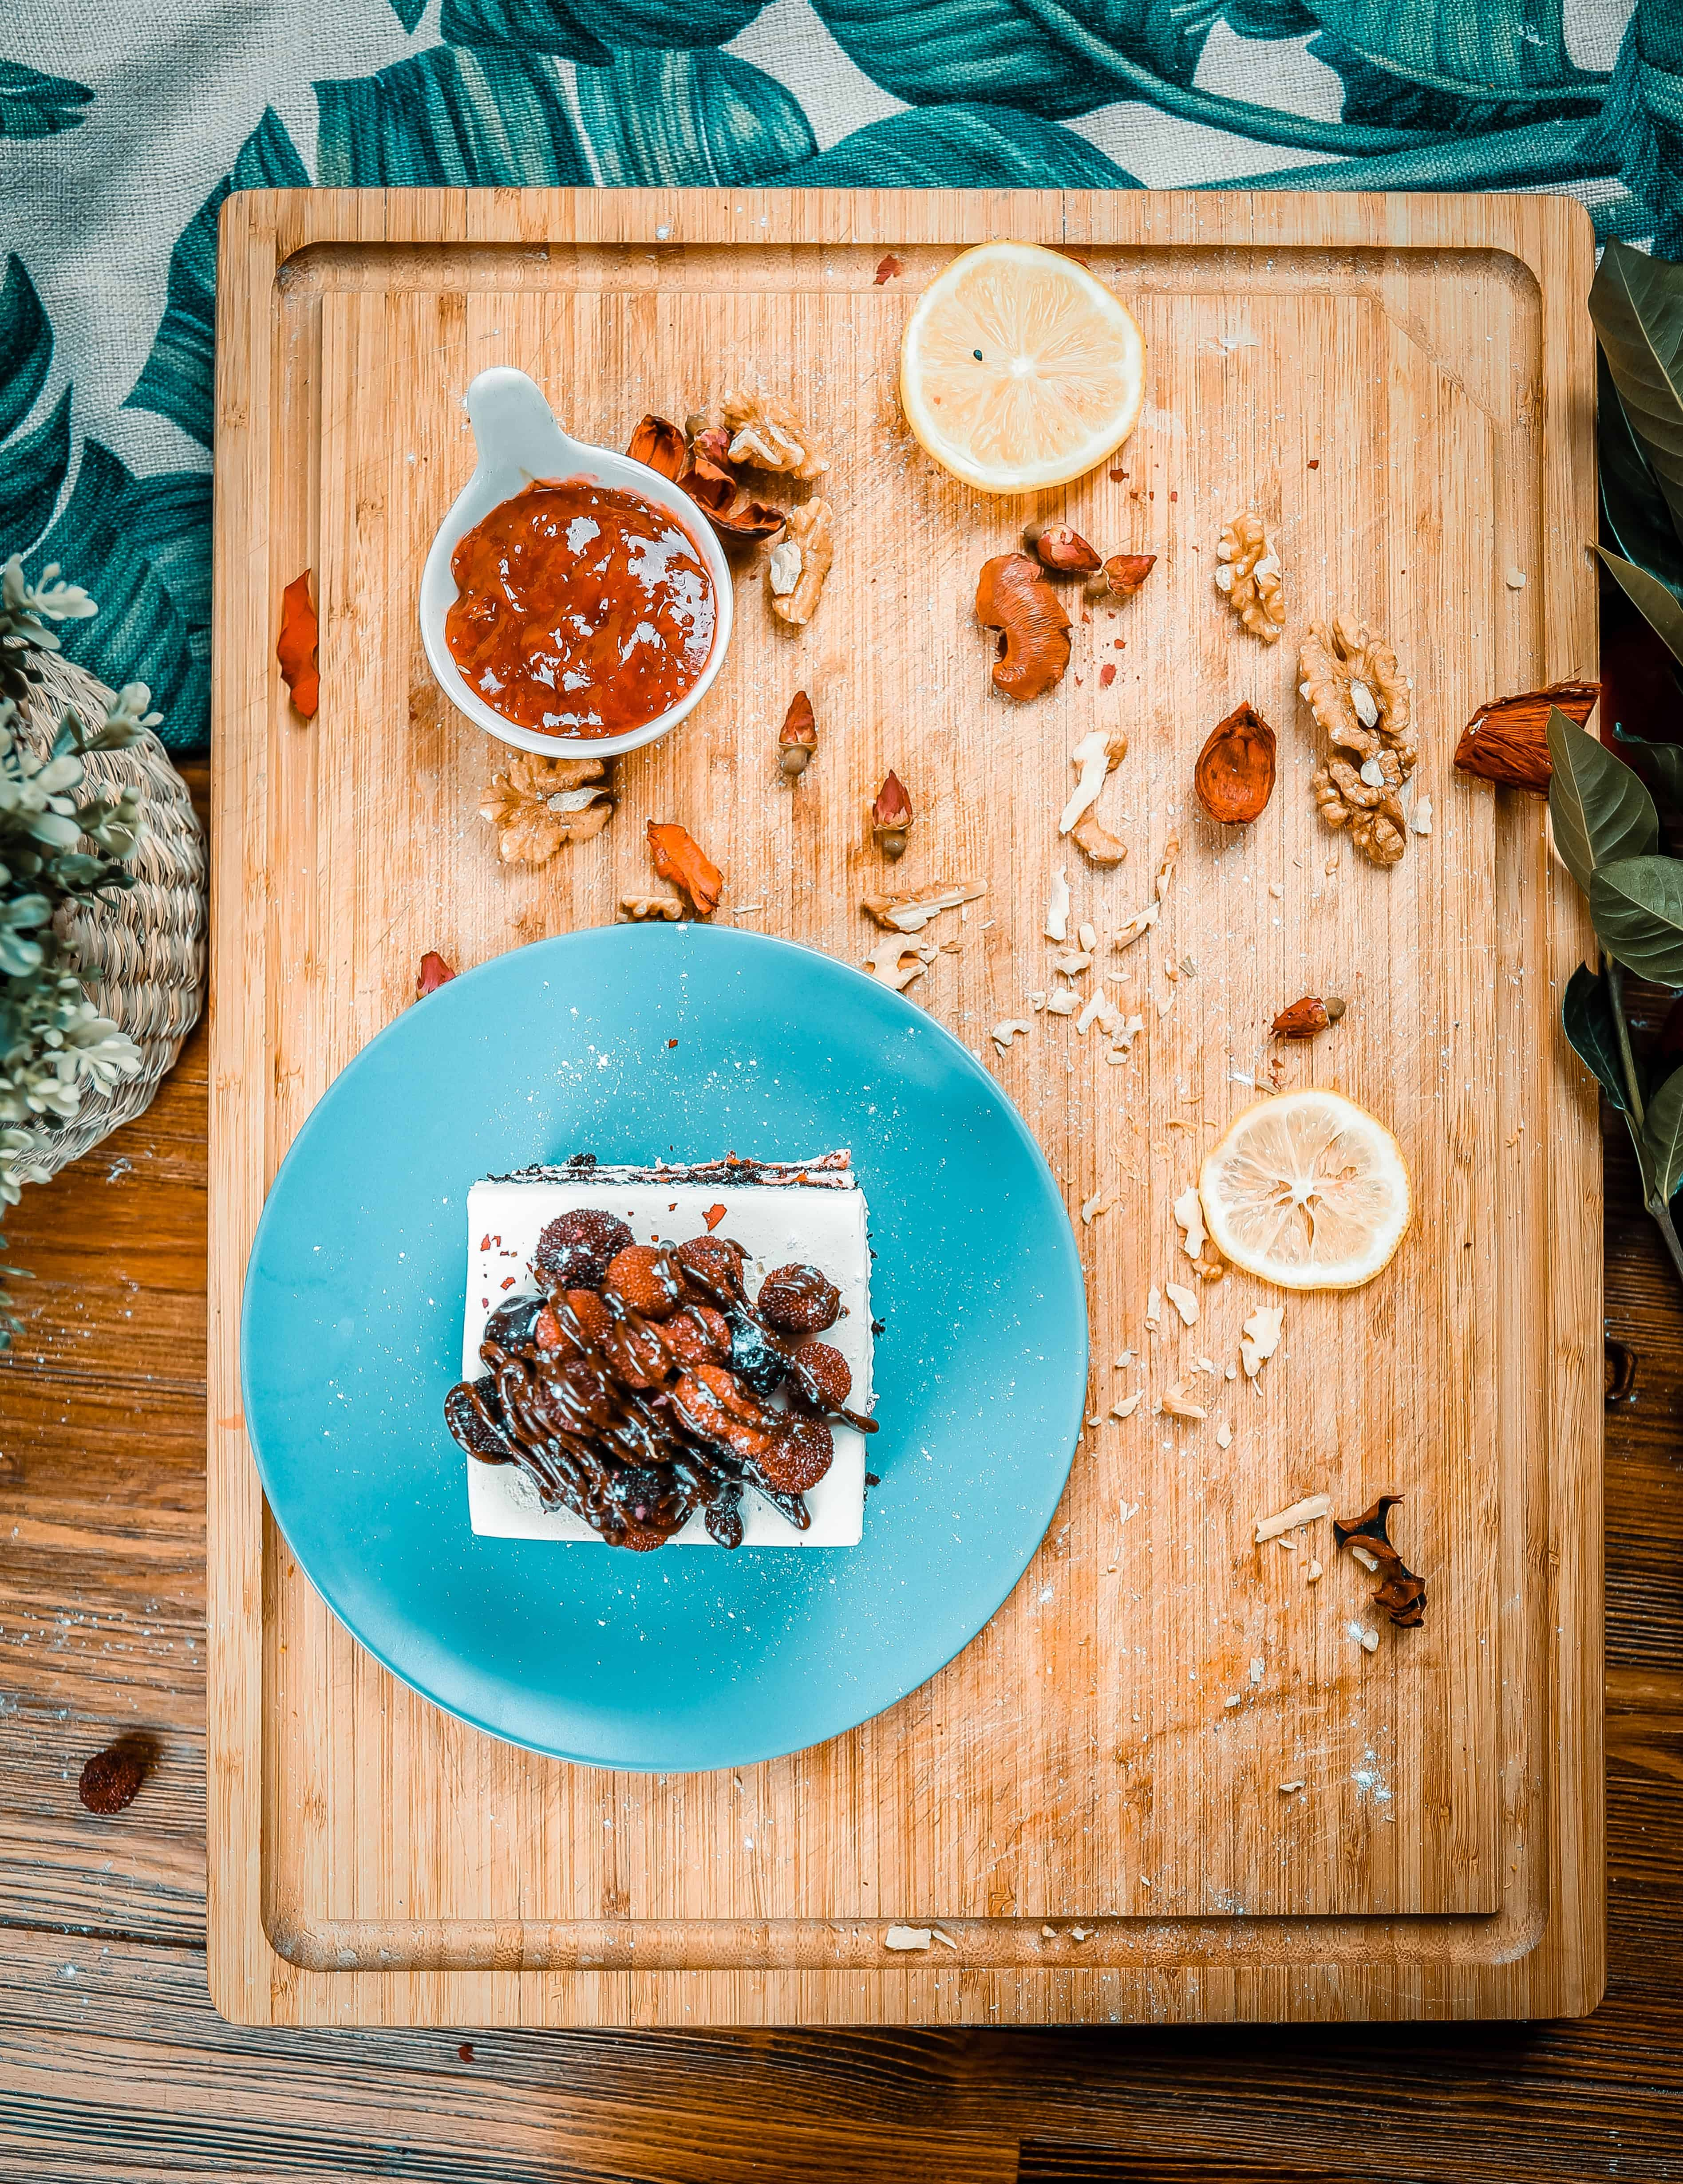 wooden table with turquoise plate and finger foods